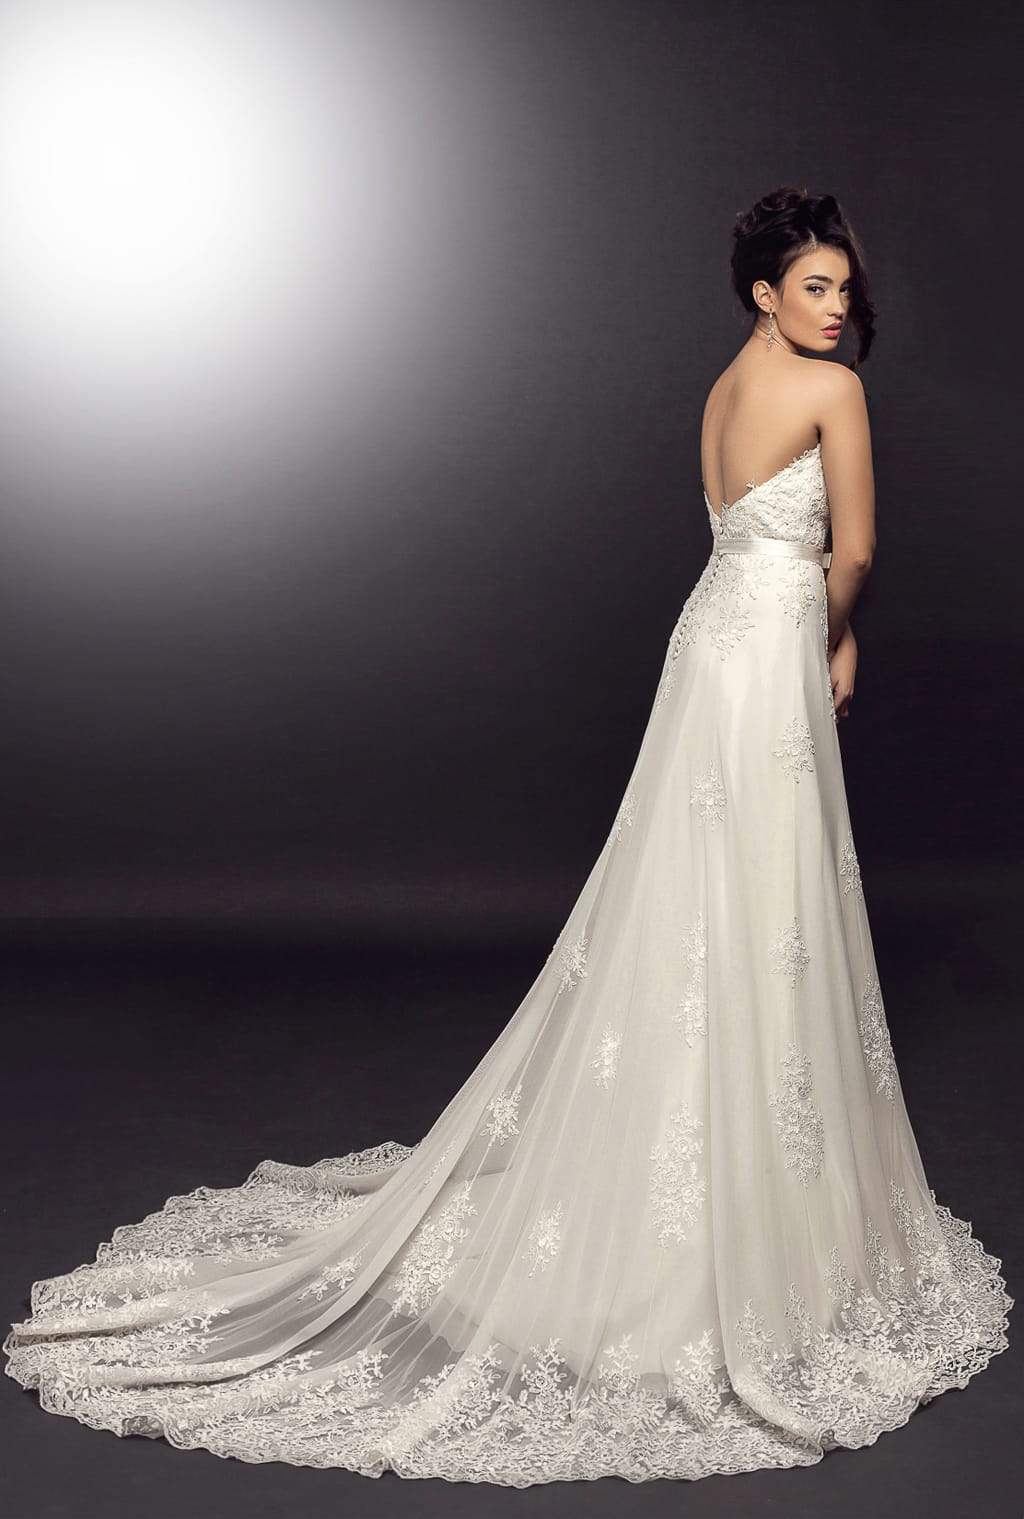 Paccia Model - Colectia Dreams - Adora Sposa (2)